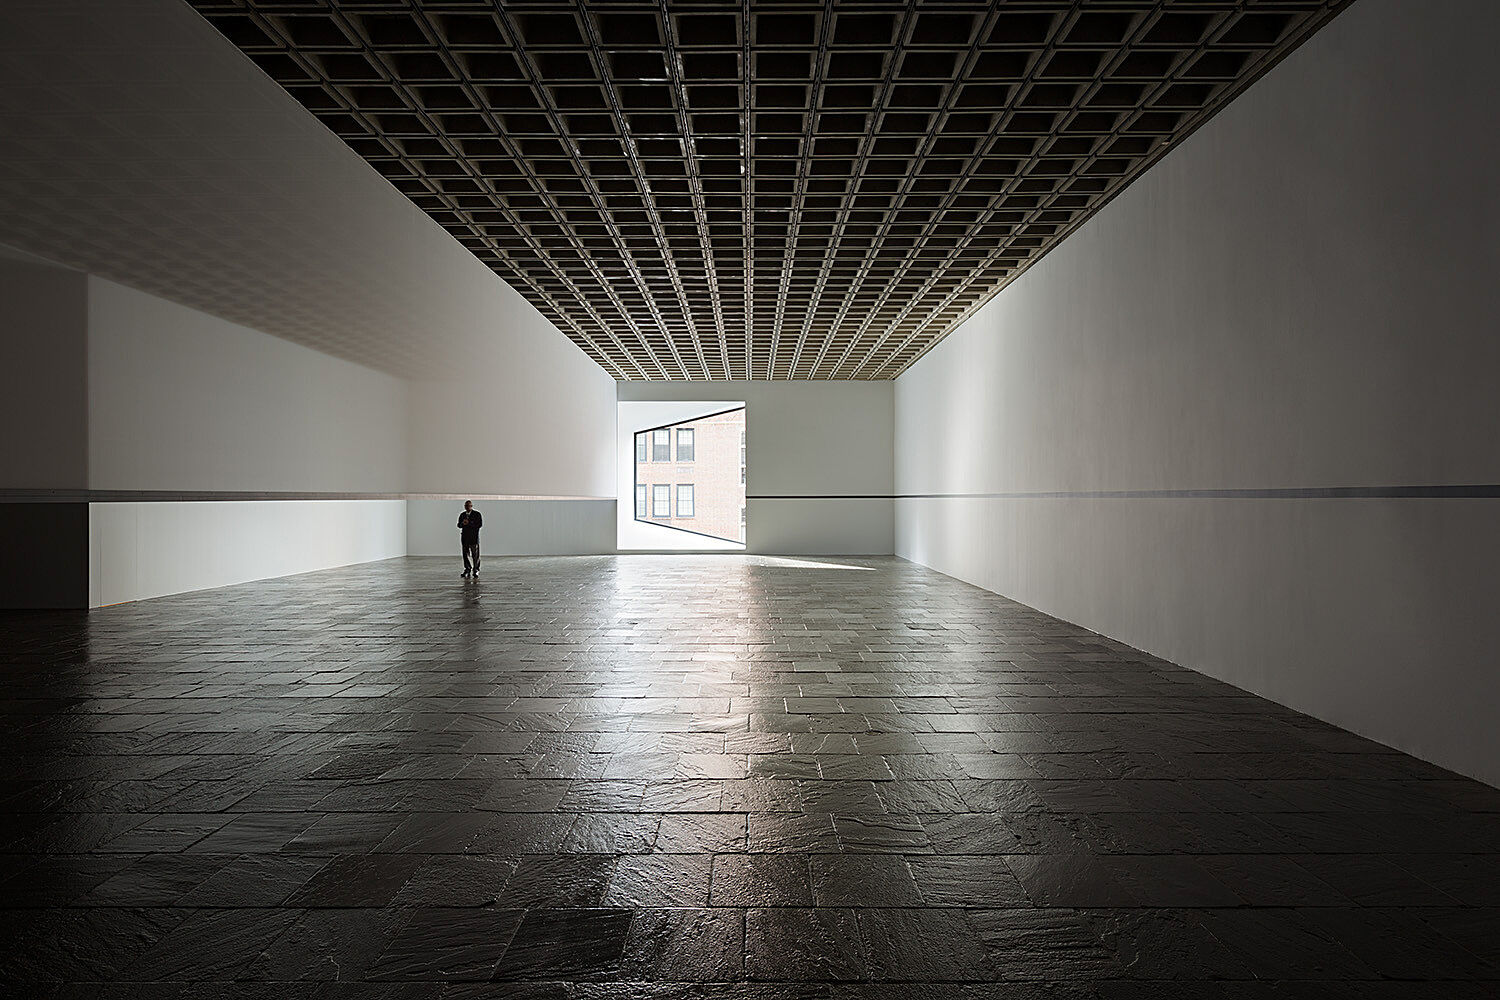 A single person stands at the end of a gallery near a window with light streaming through.